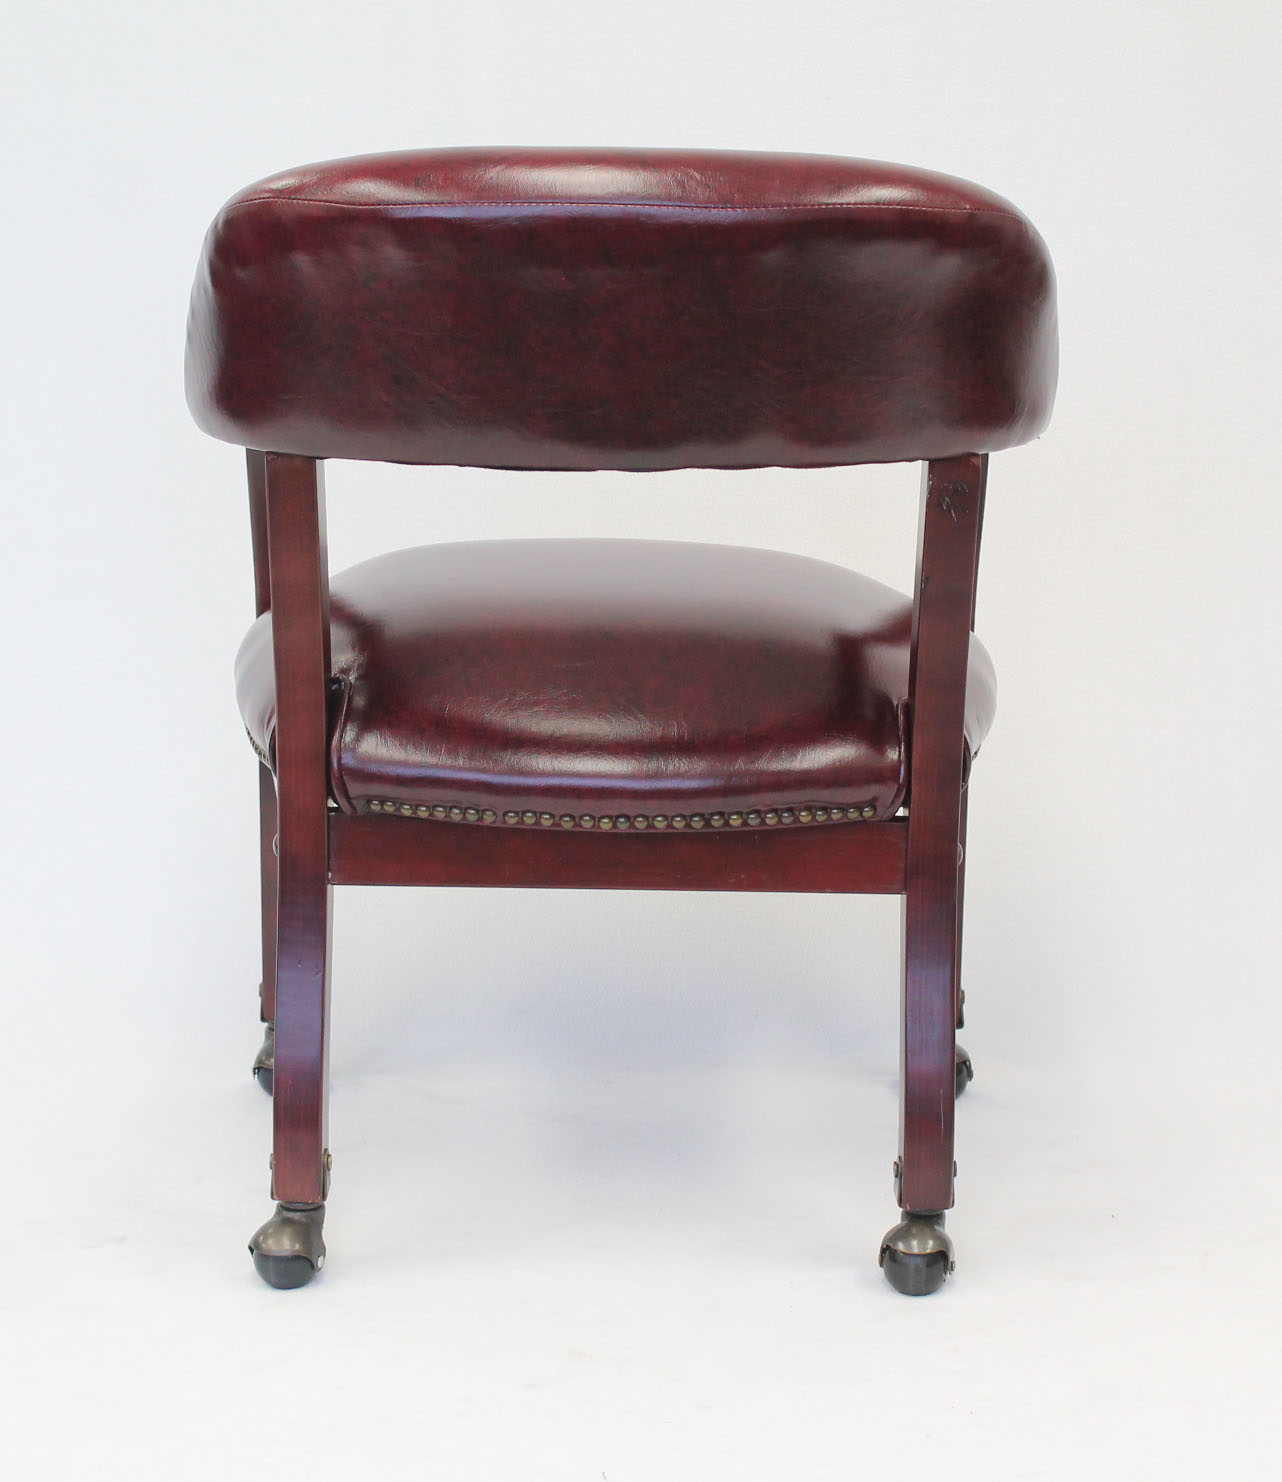 captains chair cane for repair boss ivy league executive captain s in vinyl with casters burgundy